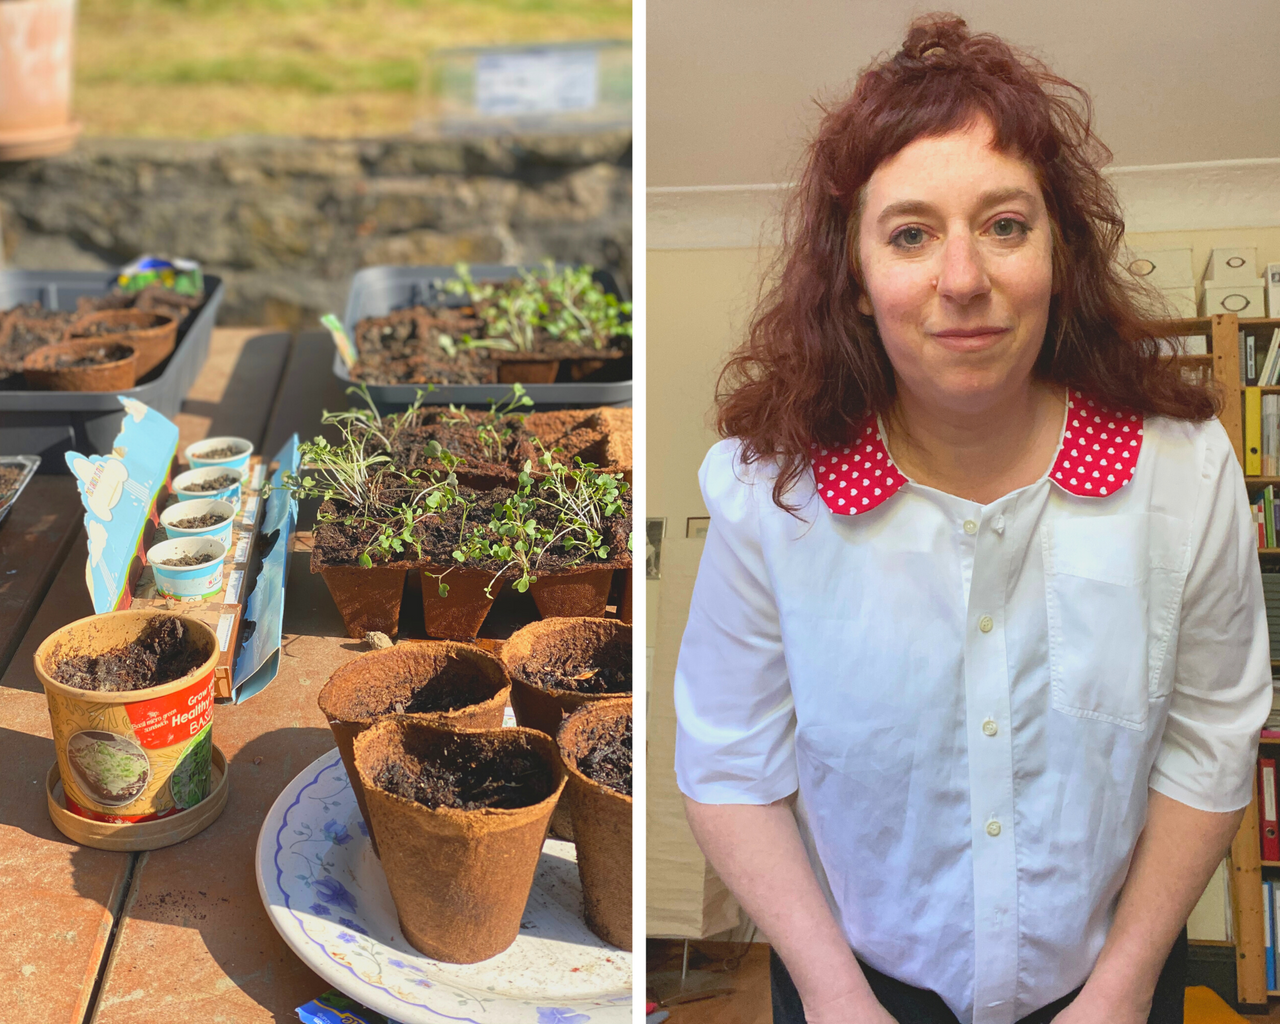 a photo of growing seedlings and an image of Simone wearing her handmade blouse with a red Peter Pan collar